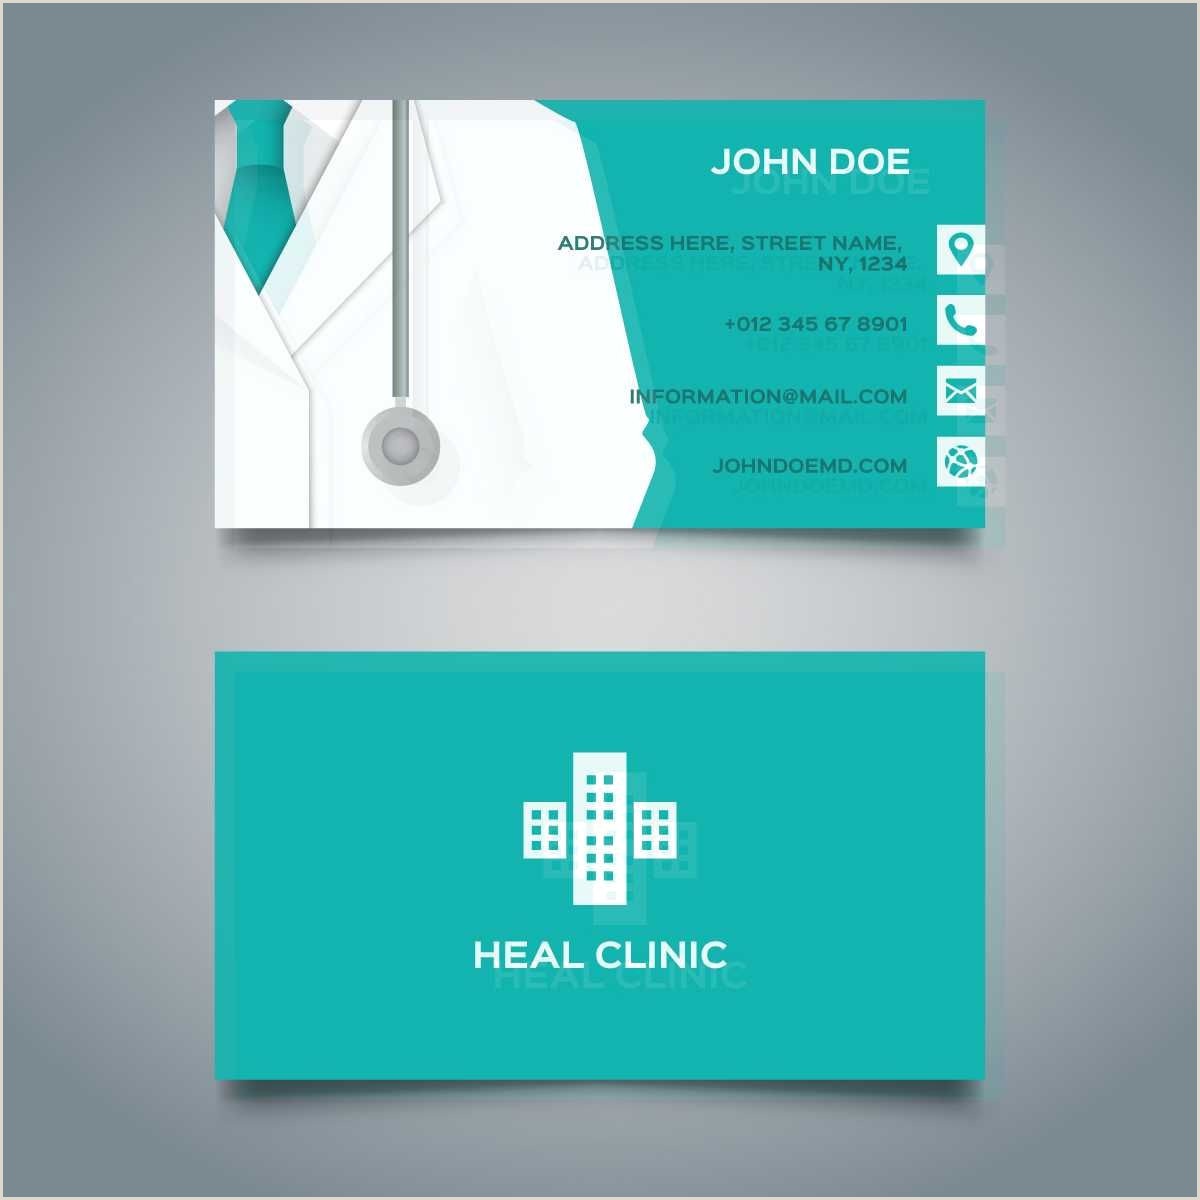 Business Card Layout Ideas Blue Medical Card Free